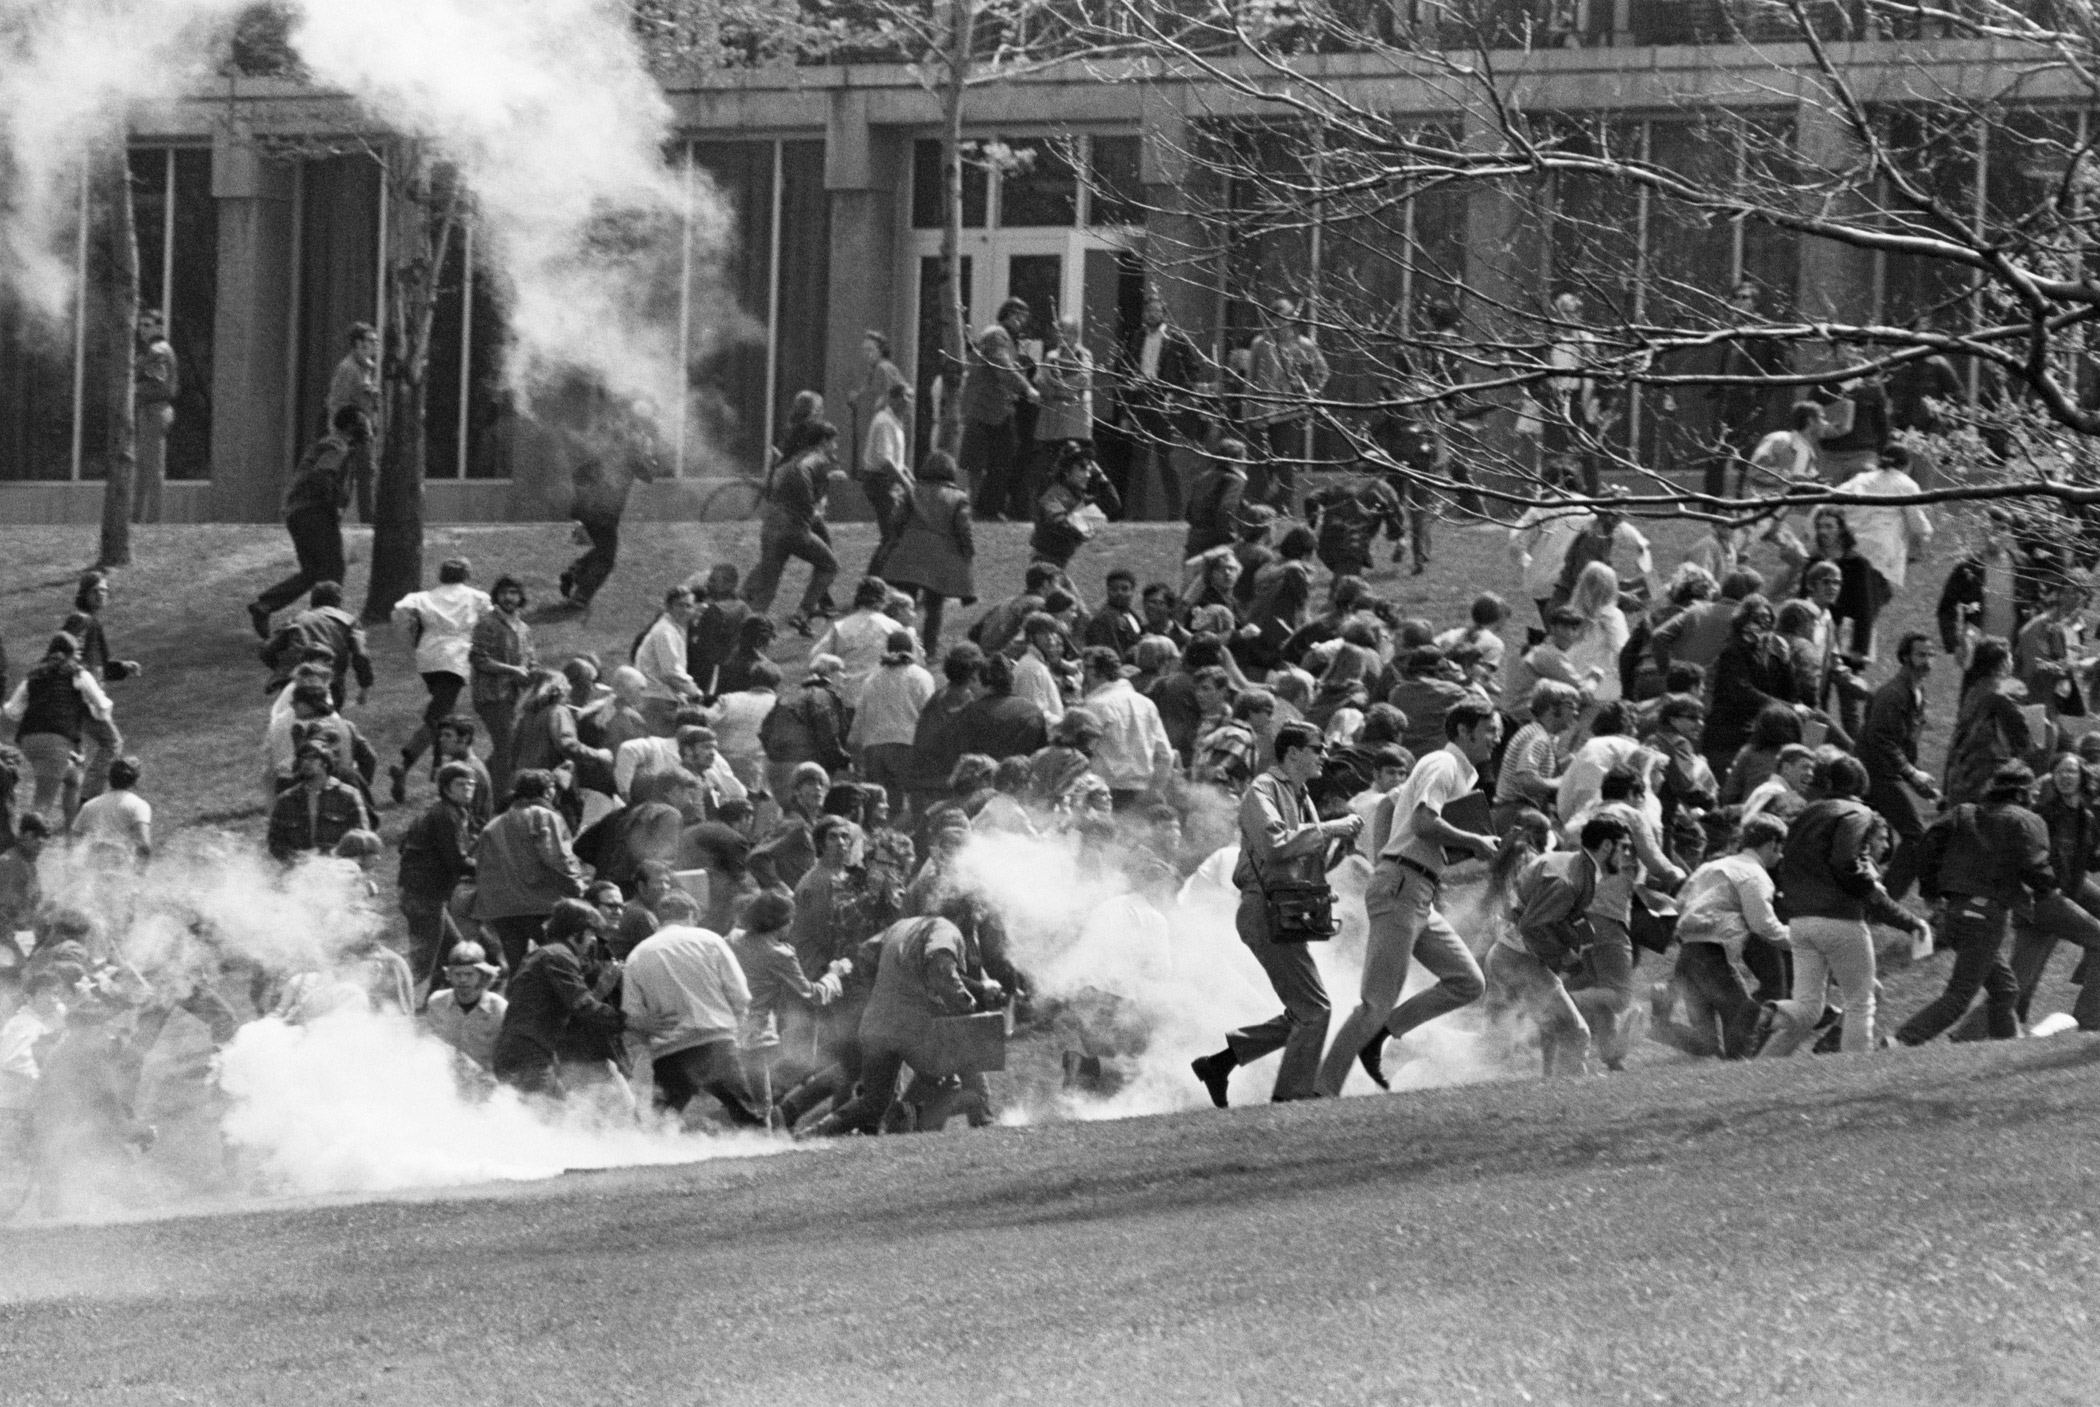 Kent State University students, including anti-war demonstrators, flee as National Guardsmen fire tear gas and bullets into the crowd on May 7, 1970 in Kent, Ohio. The guardsmen killed four students and wounded nine others. The event triggered a national student strike, escalating protests and garnering national media attention for the anti-war movement.